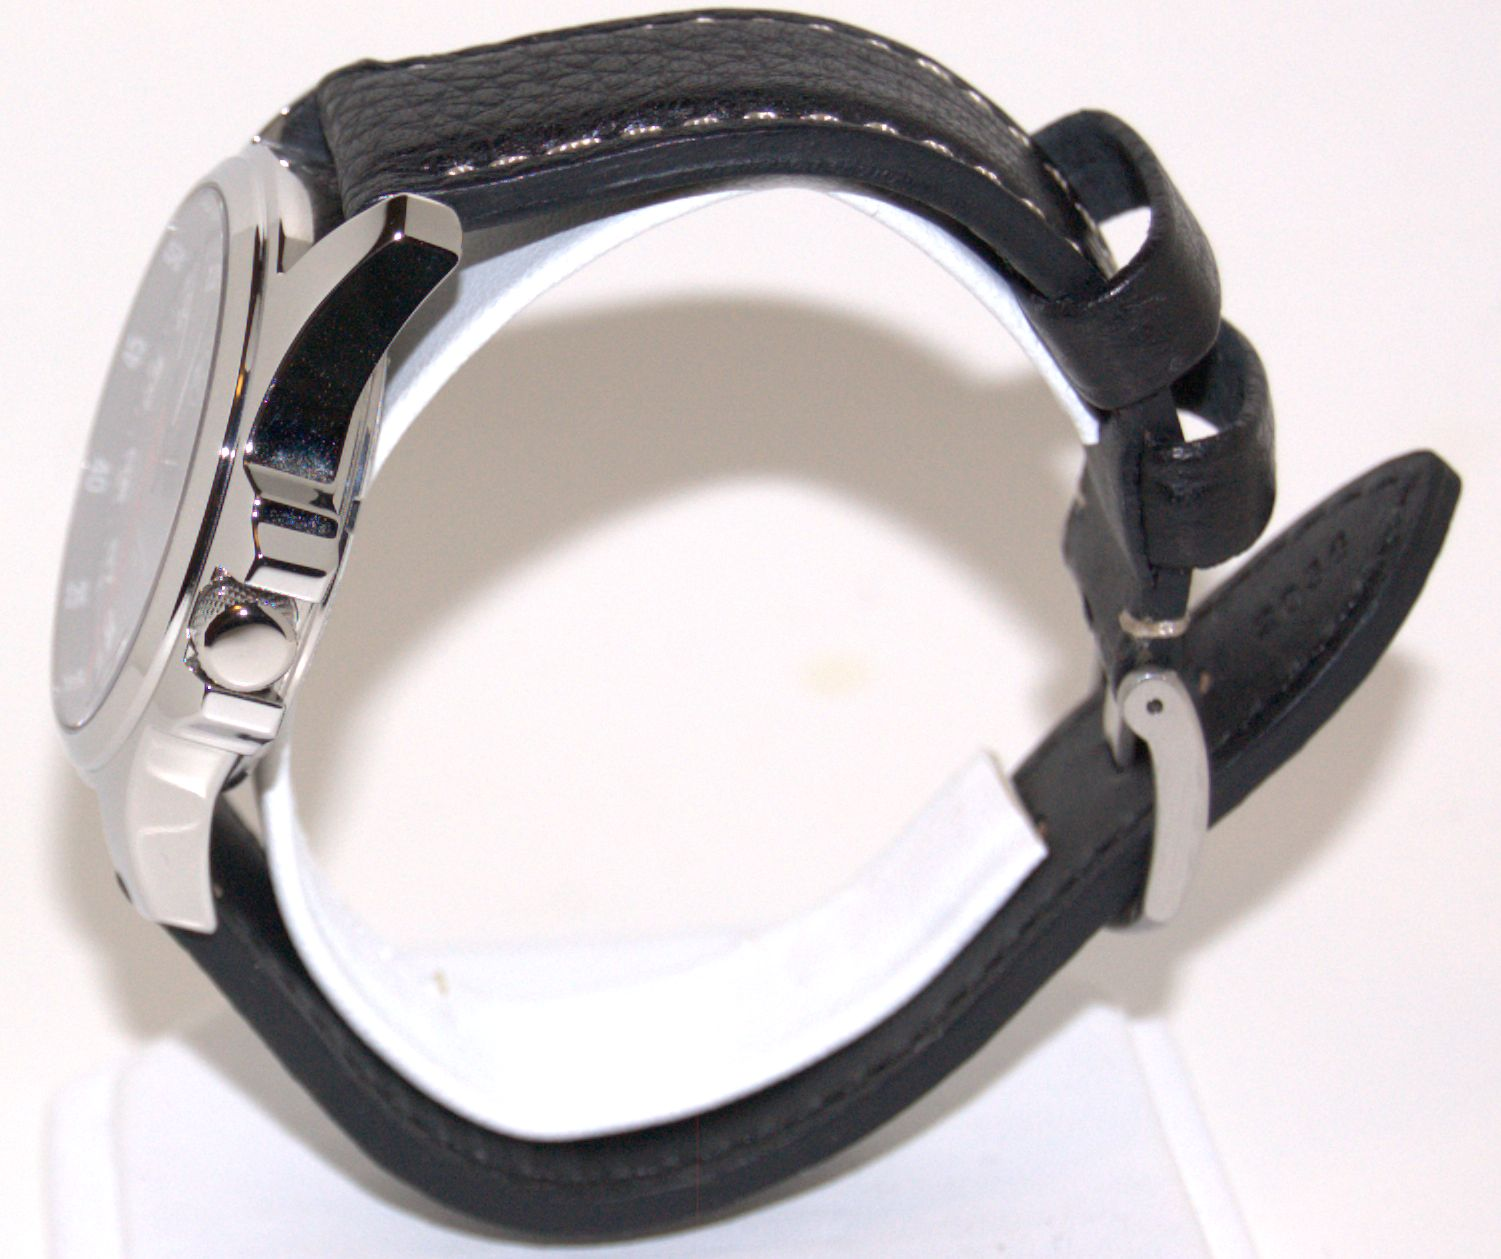 Minuteman Special Edition MM04 Watch Black Leather Strap